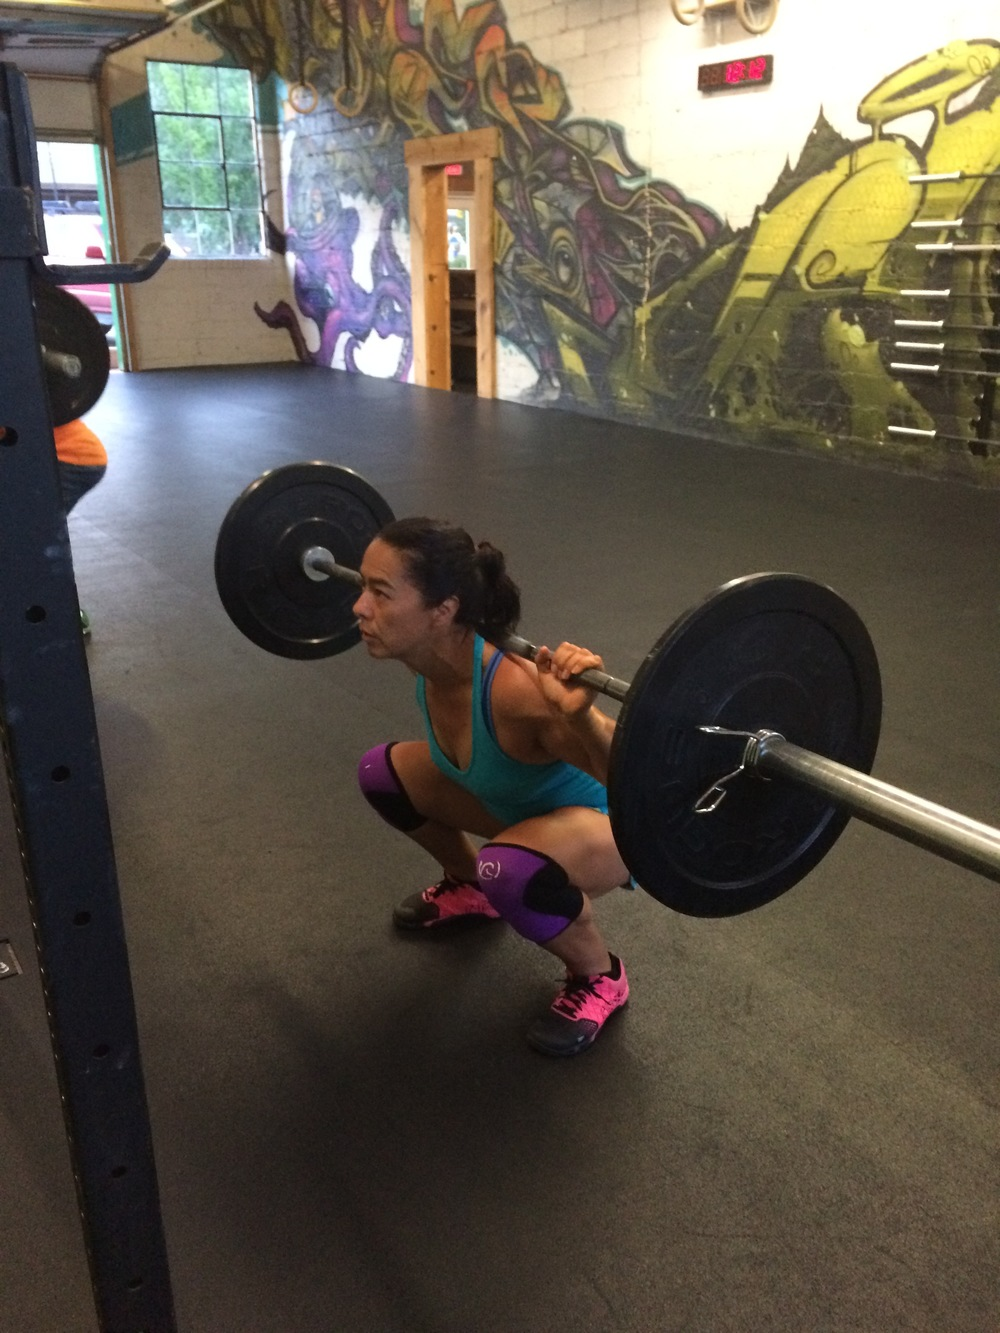 Back squats only count if the crease of your hip is below the top of your knee. I think julianna has that nailed.